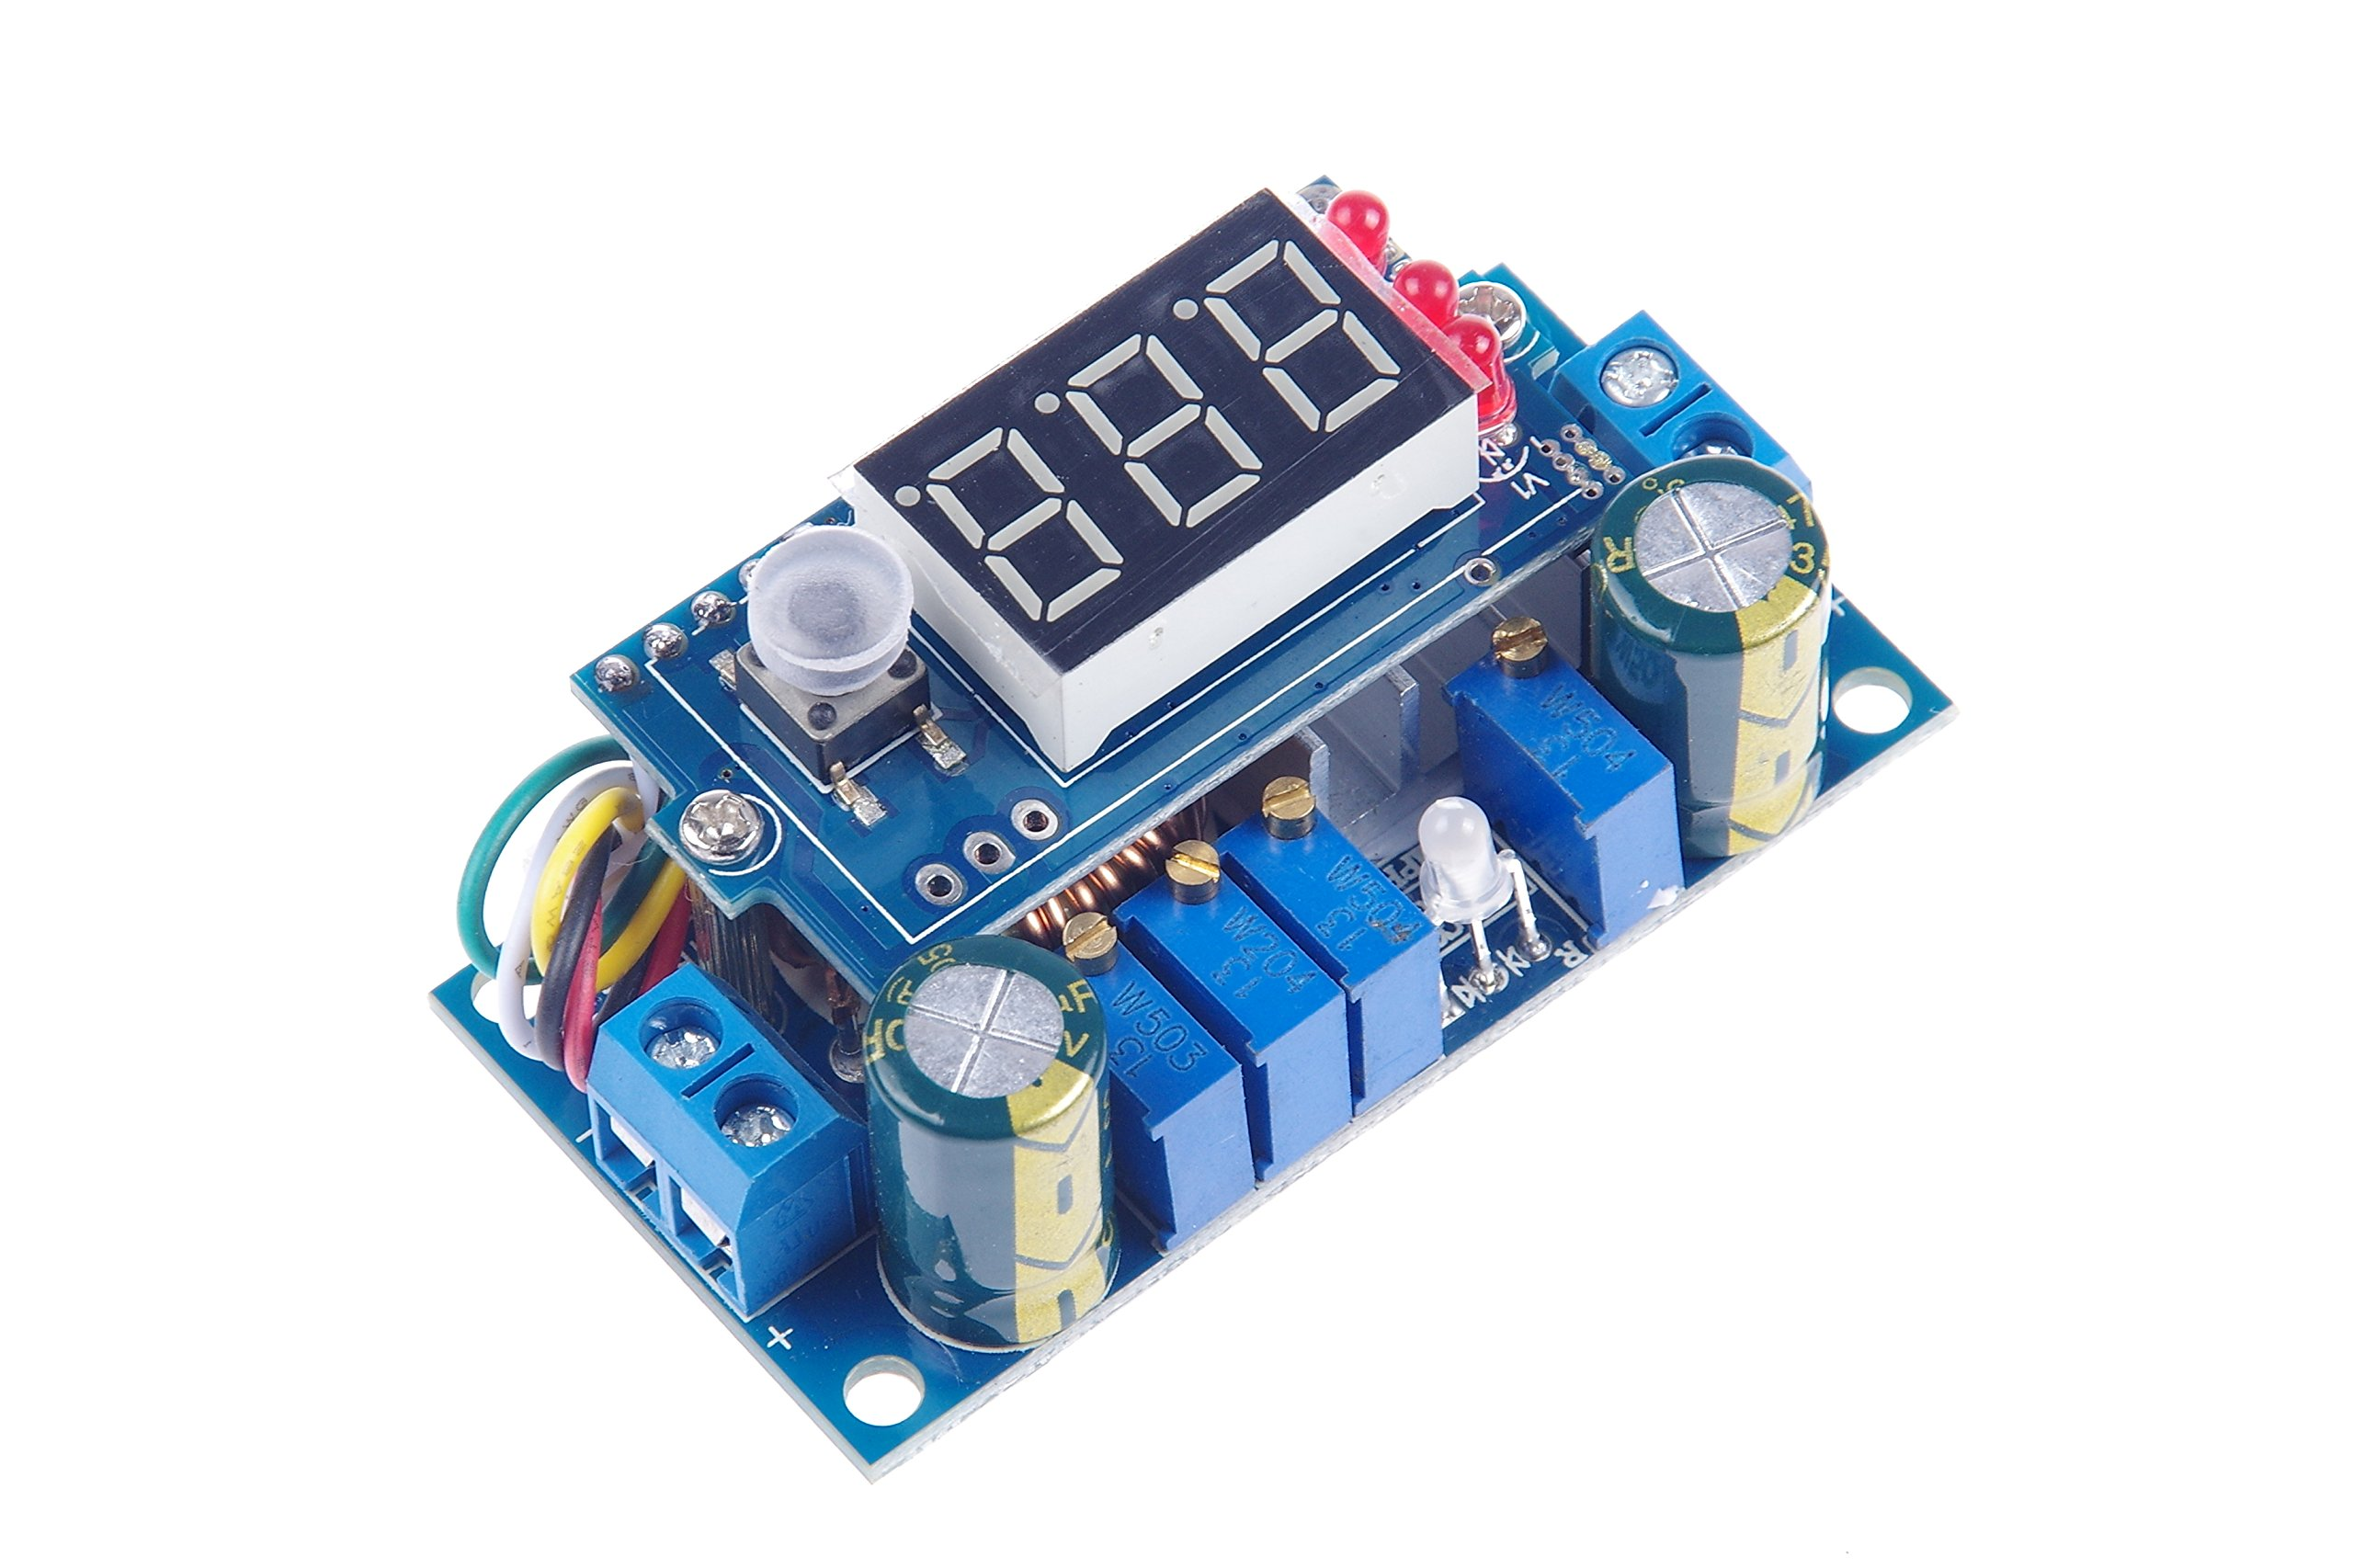 KNACRO DC Voltage Regulator Buck Converter 6-36V to 1.25-32V 5A Constant Current Voltage MPPT Solar Controller with LED Voltmeter Ammeter Power Display for Charging Battery Car Power